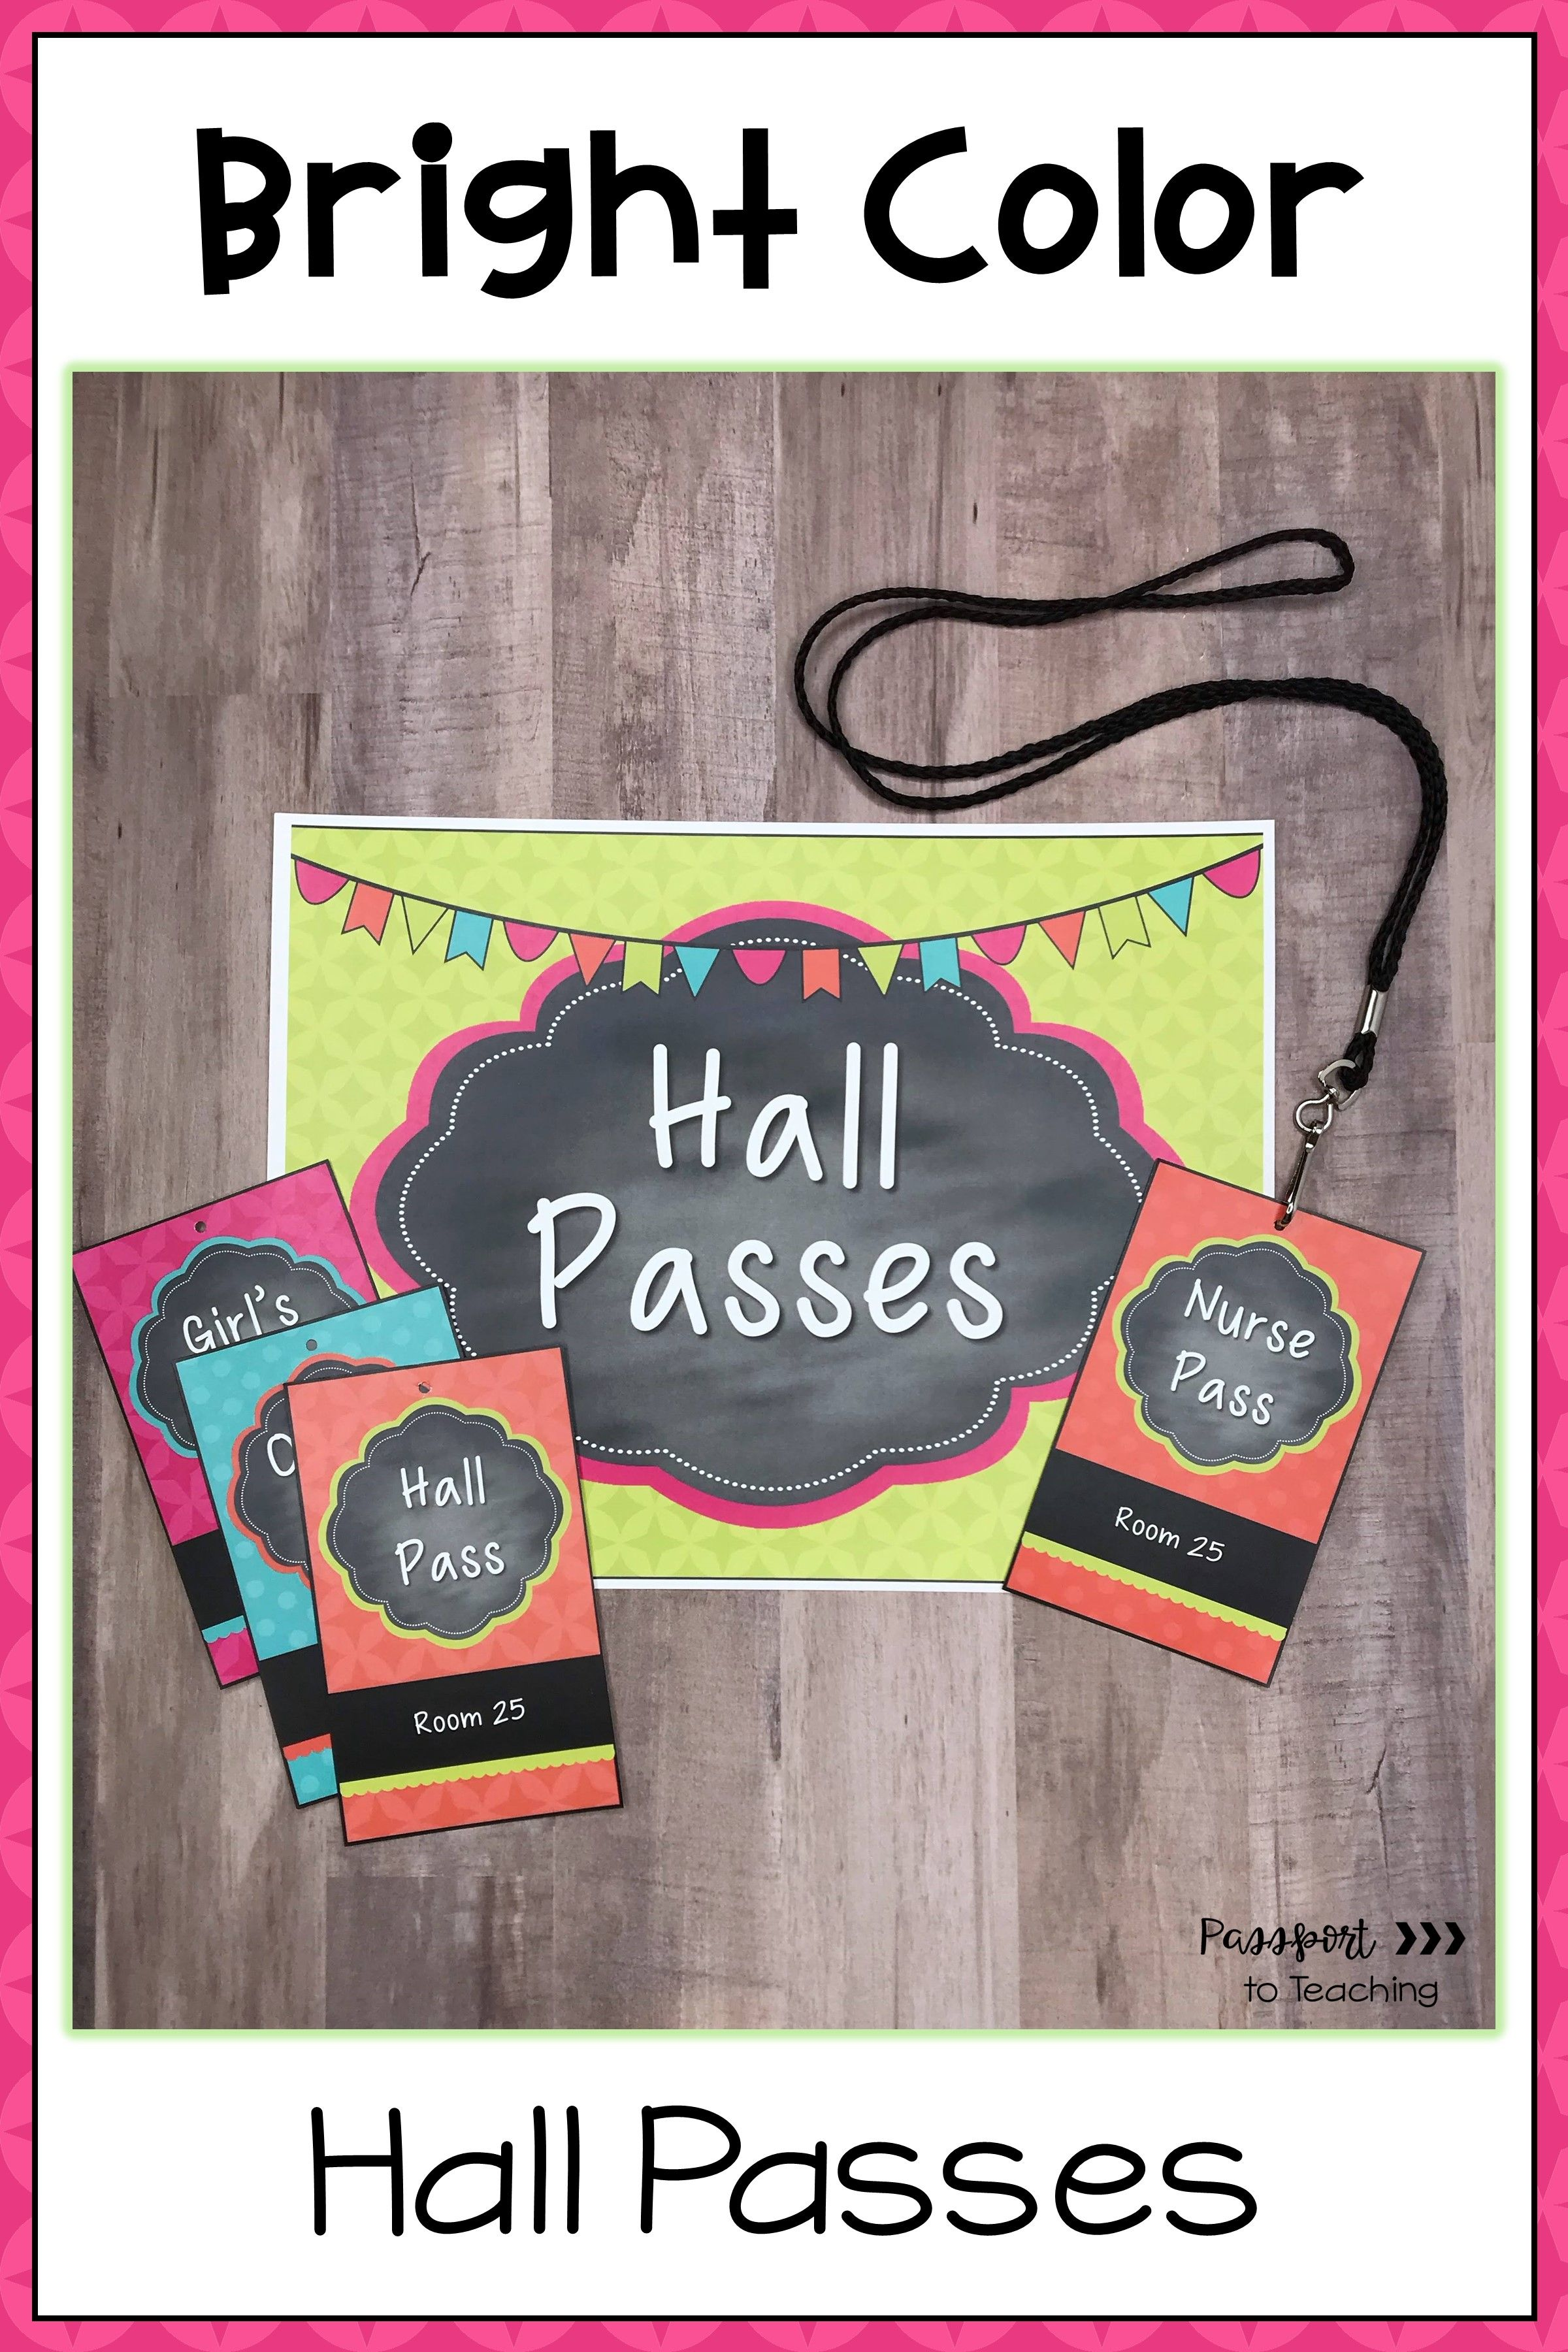 Bright Color Hall Passes EDITABLE in 2020 | Hall pass ...